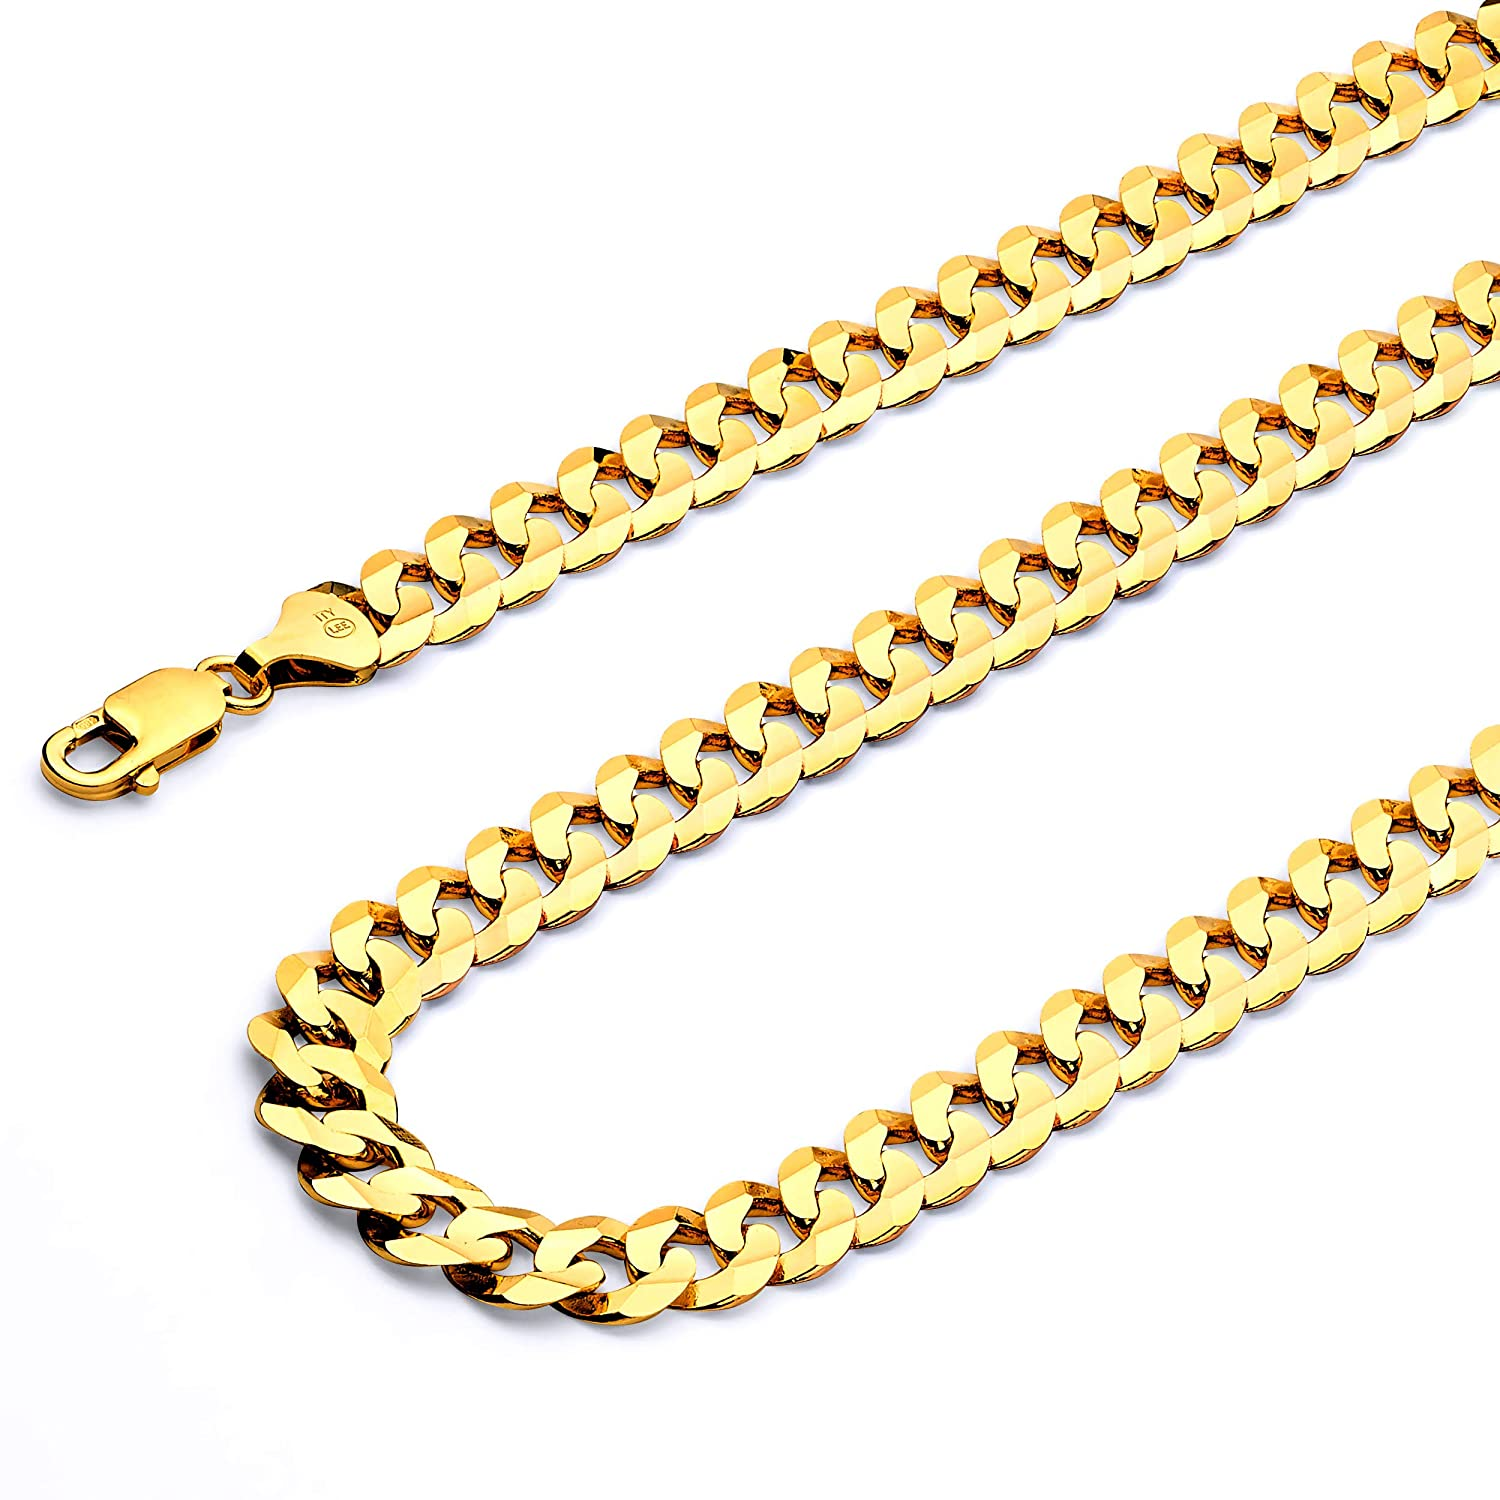 523231aec7ebf 14k Yellow OR White Gold Solid Men's 4mm Cuban Concave Curb Chain Necklace  with Lobster Claw Clasp